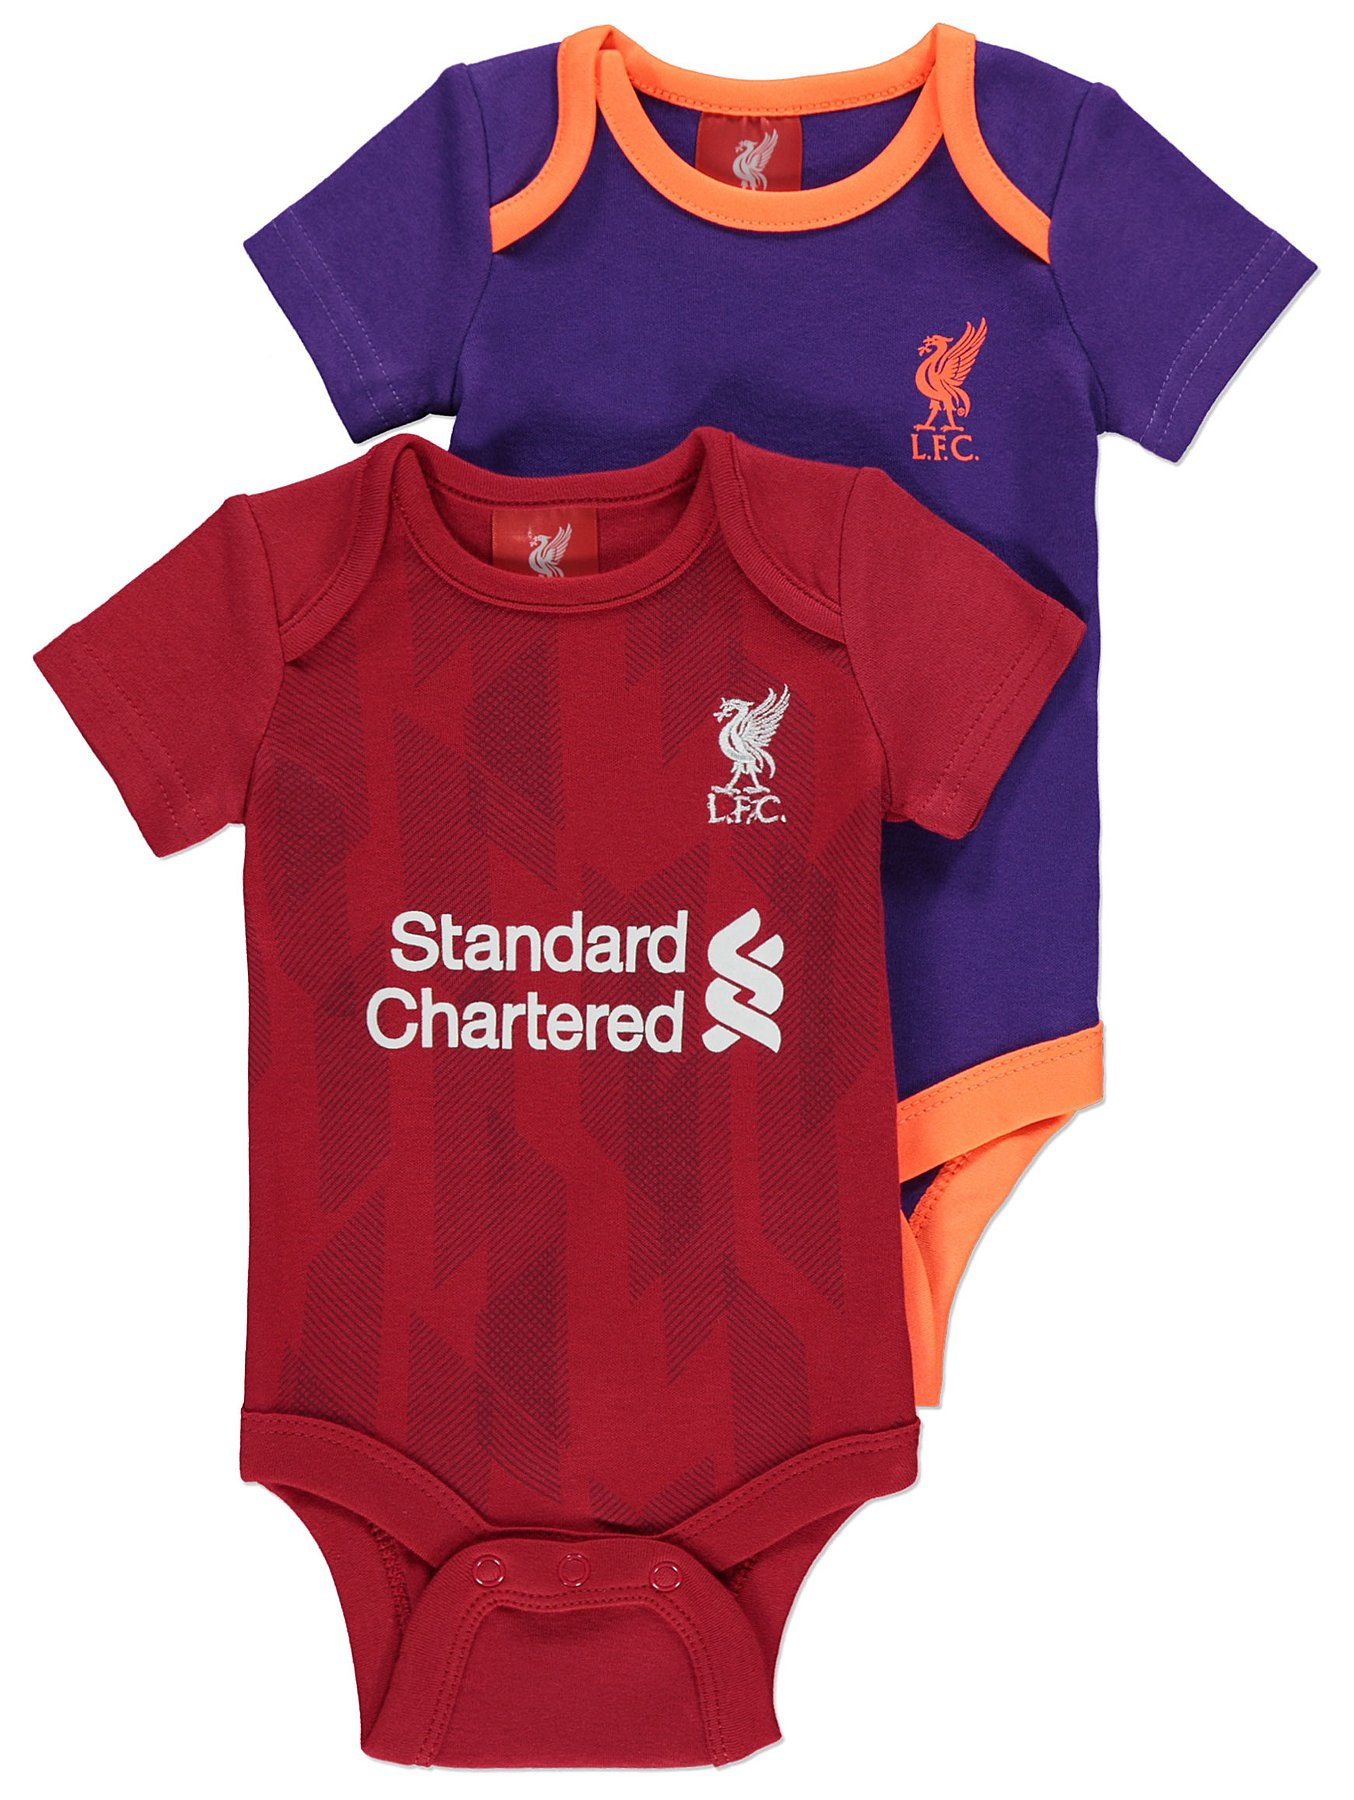 6eefafb0b Official Liverpool FC Bodysuits 2 Pack. Reset